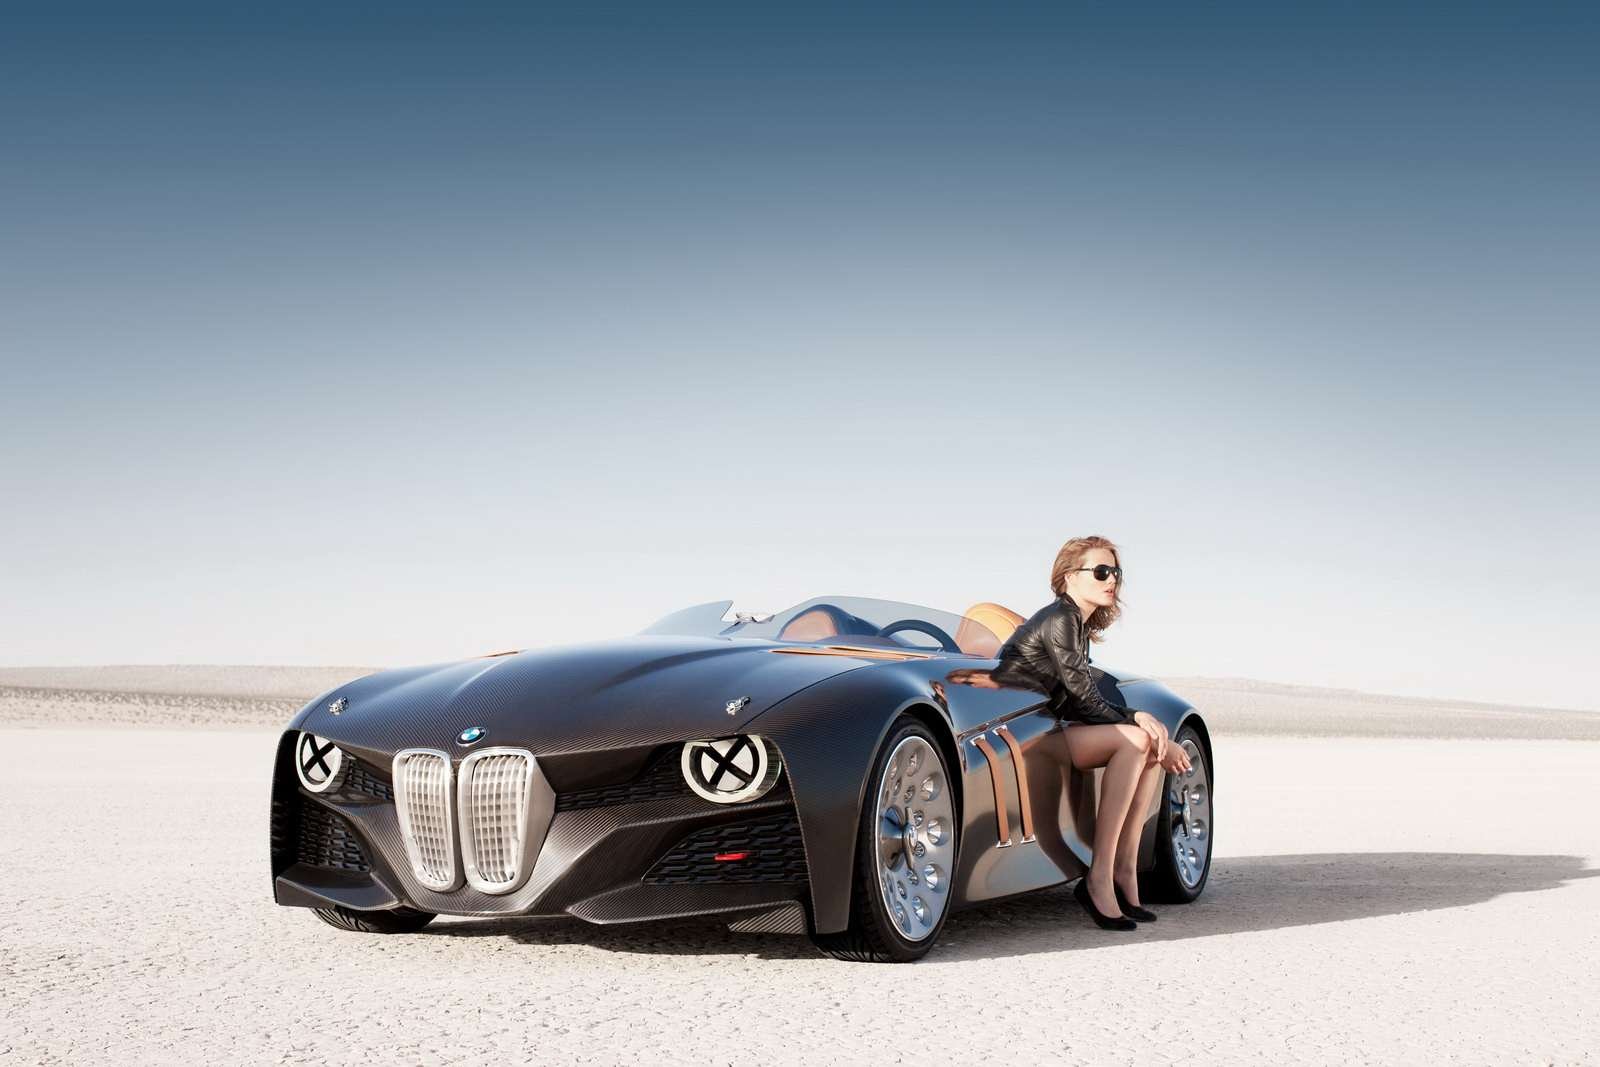 BMW Retrolicious 328 Homage Concept maj 2011